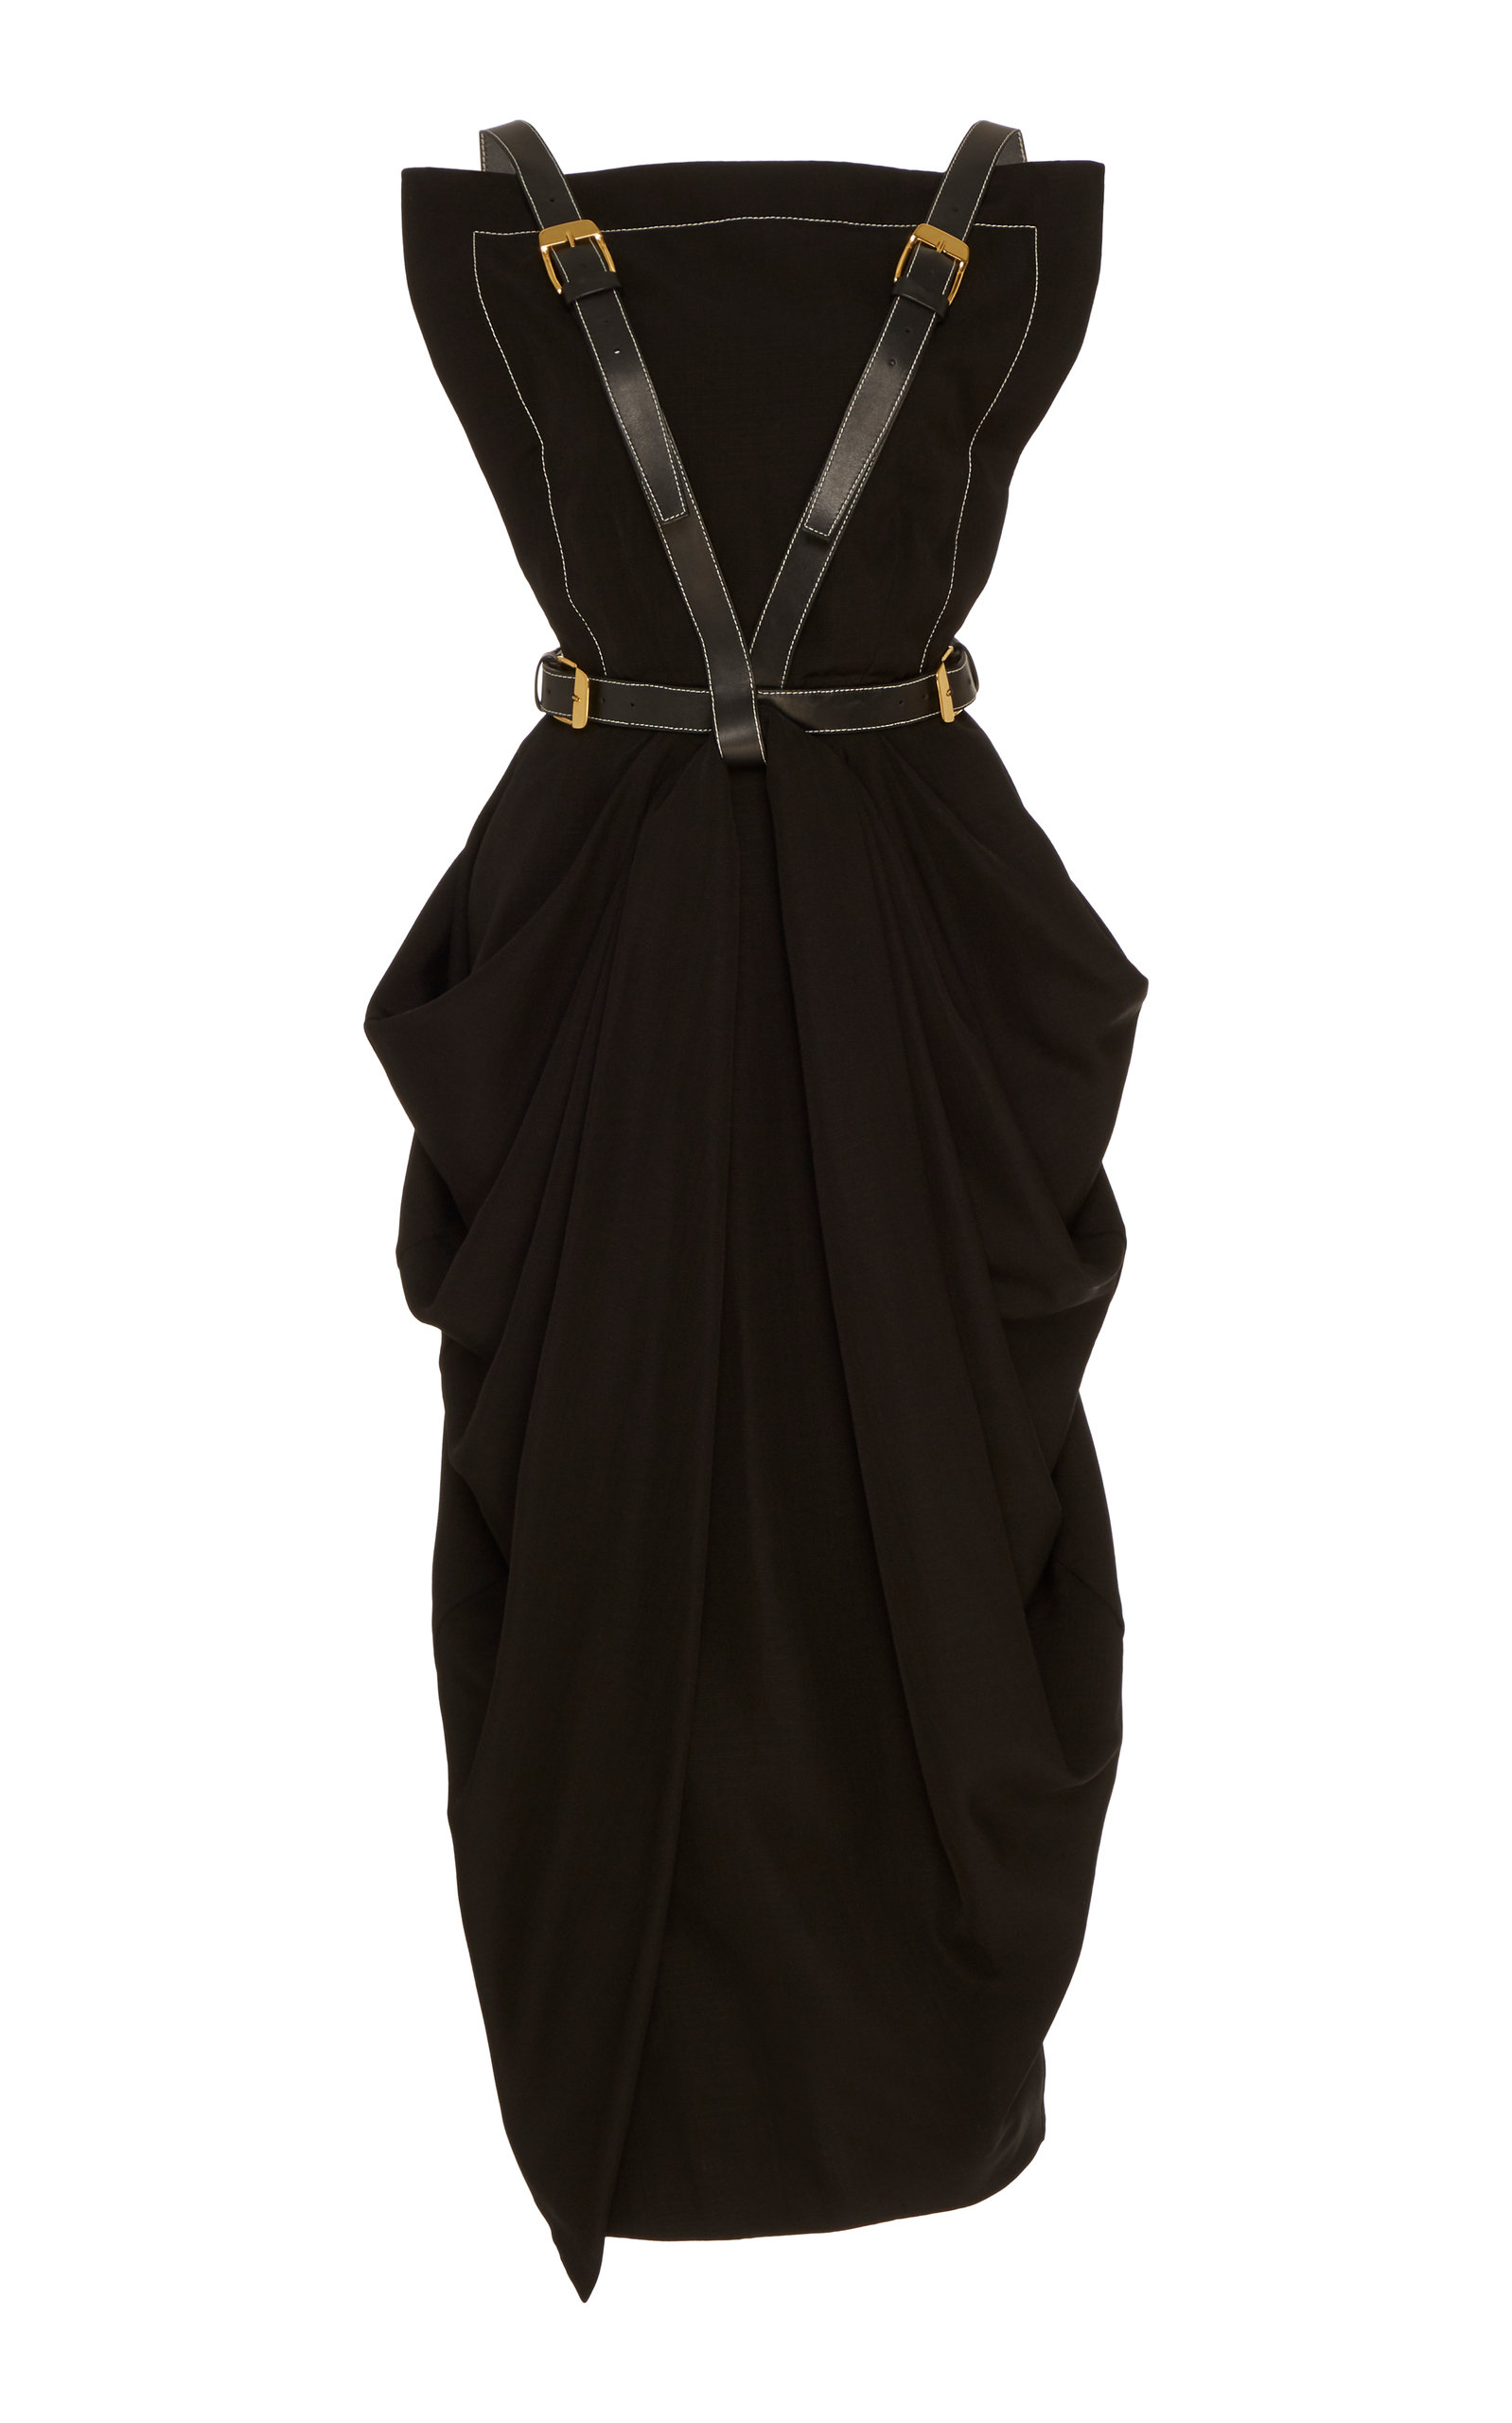 Buy Proenza Schouler Buckle-Detailed Midi Apron Dress online, shop Proenza Schouler at the best price